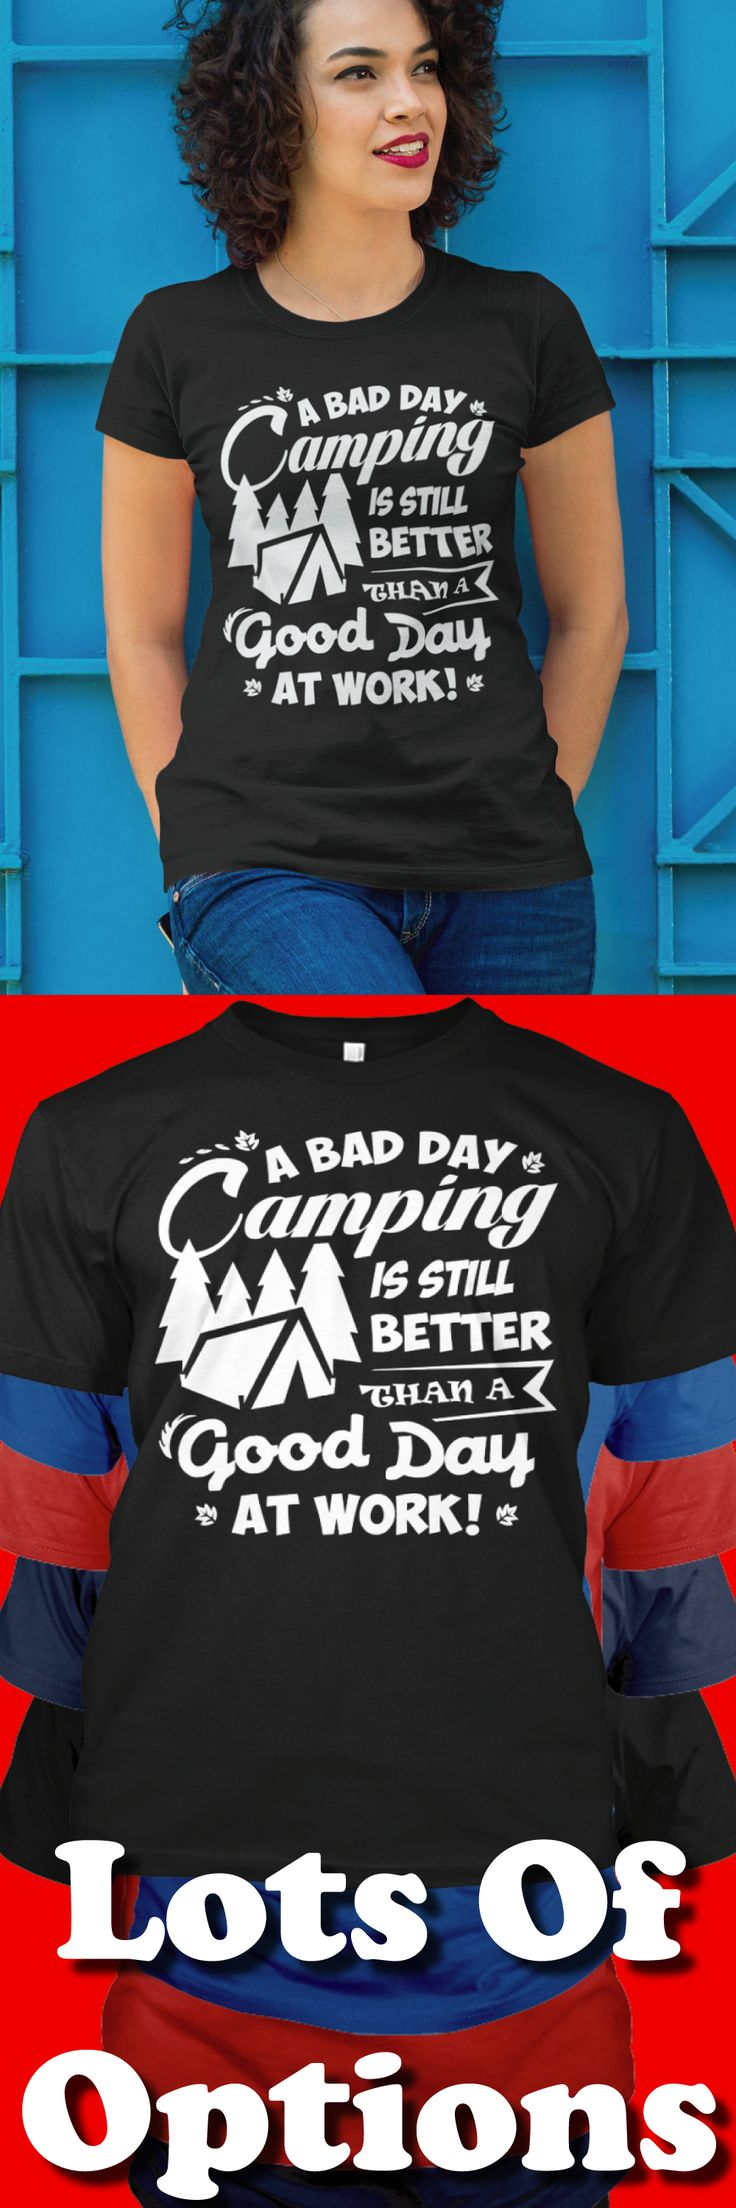 Camping Shirt: A Bad Day Camping Is Better Than A Good Day At Work! Lose One In the Fire? Great Camping Gift! Lots Of Sizes & Colors. Like Camper, RVs, Tents and the Camping Life? Strict Limit Of 5 Shirts! Treat Yourself & Click Now! https://teespring.com/HT59-963